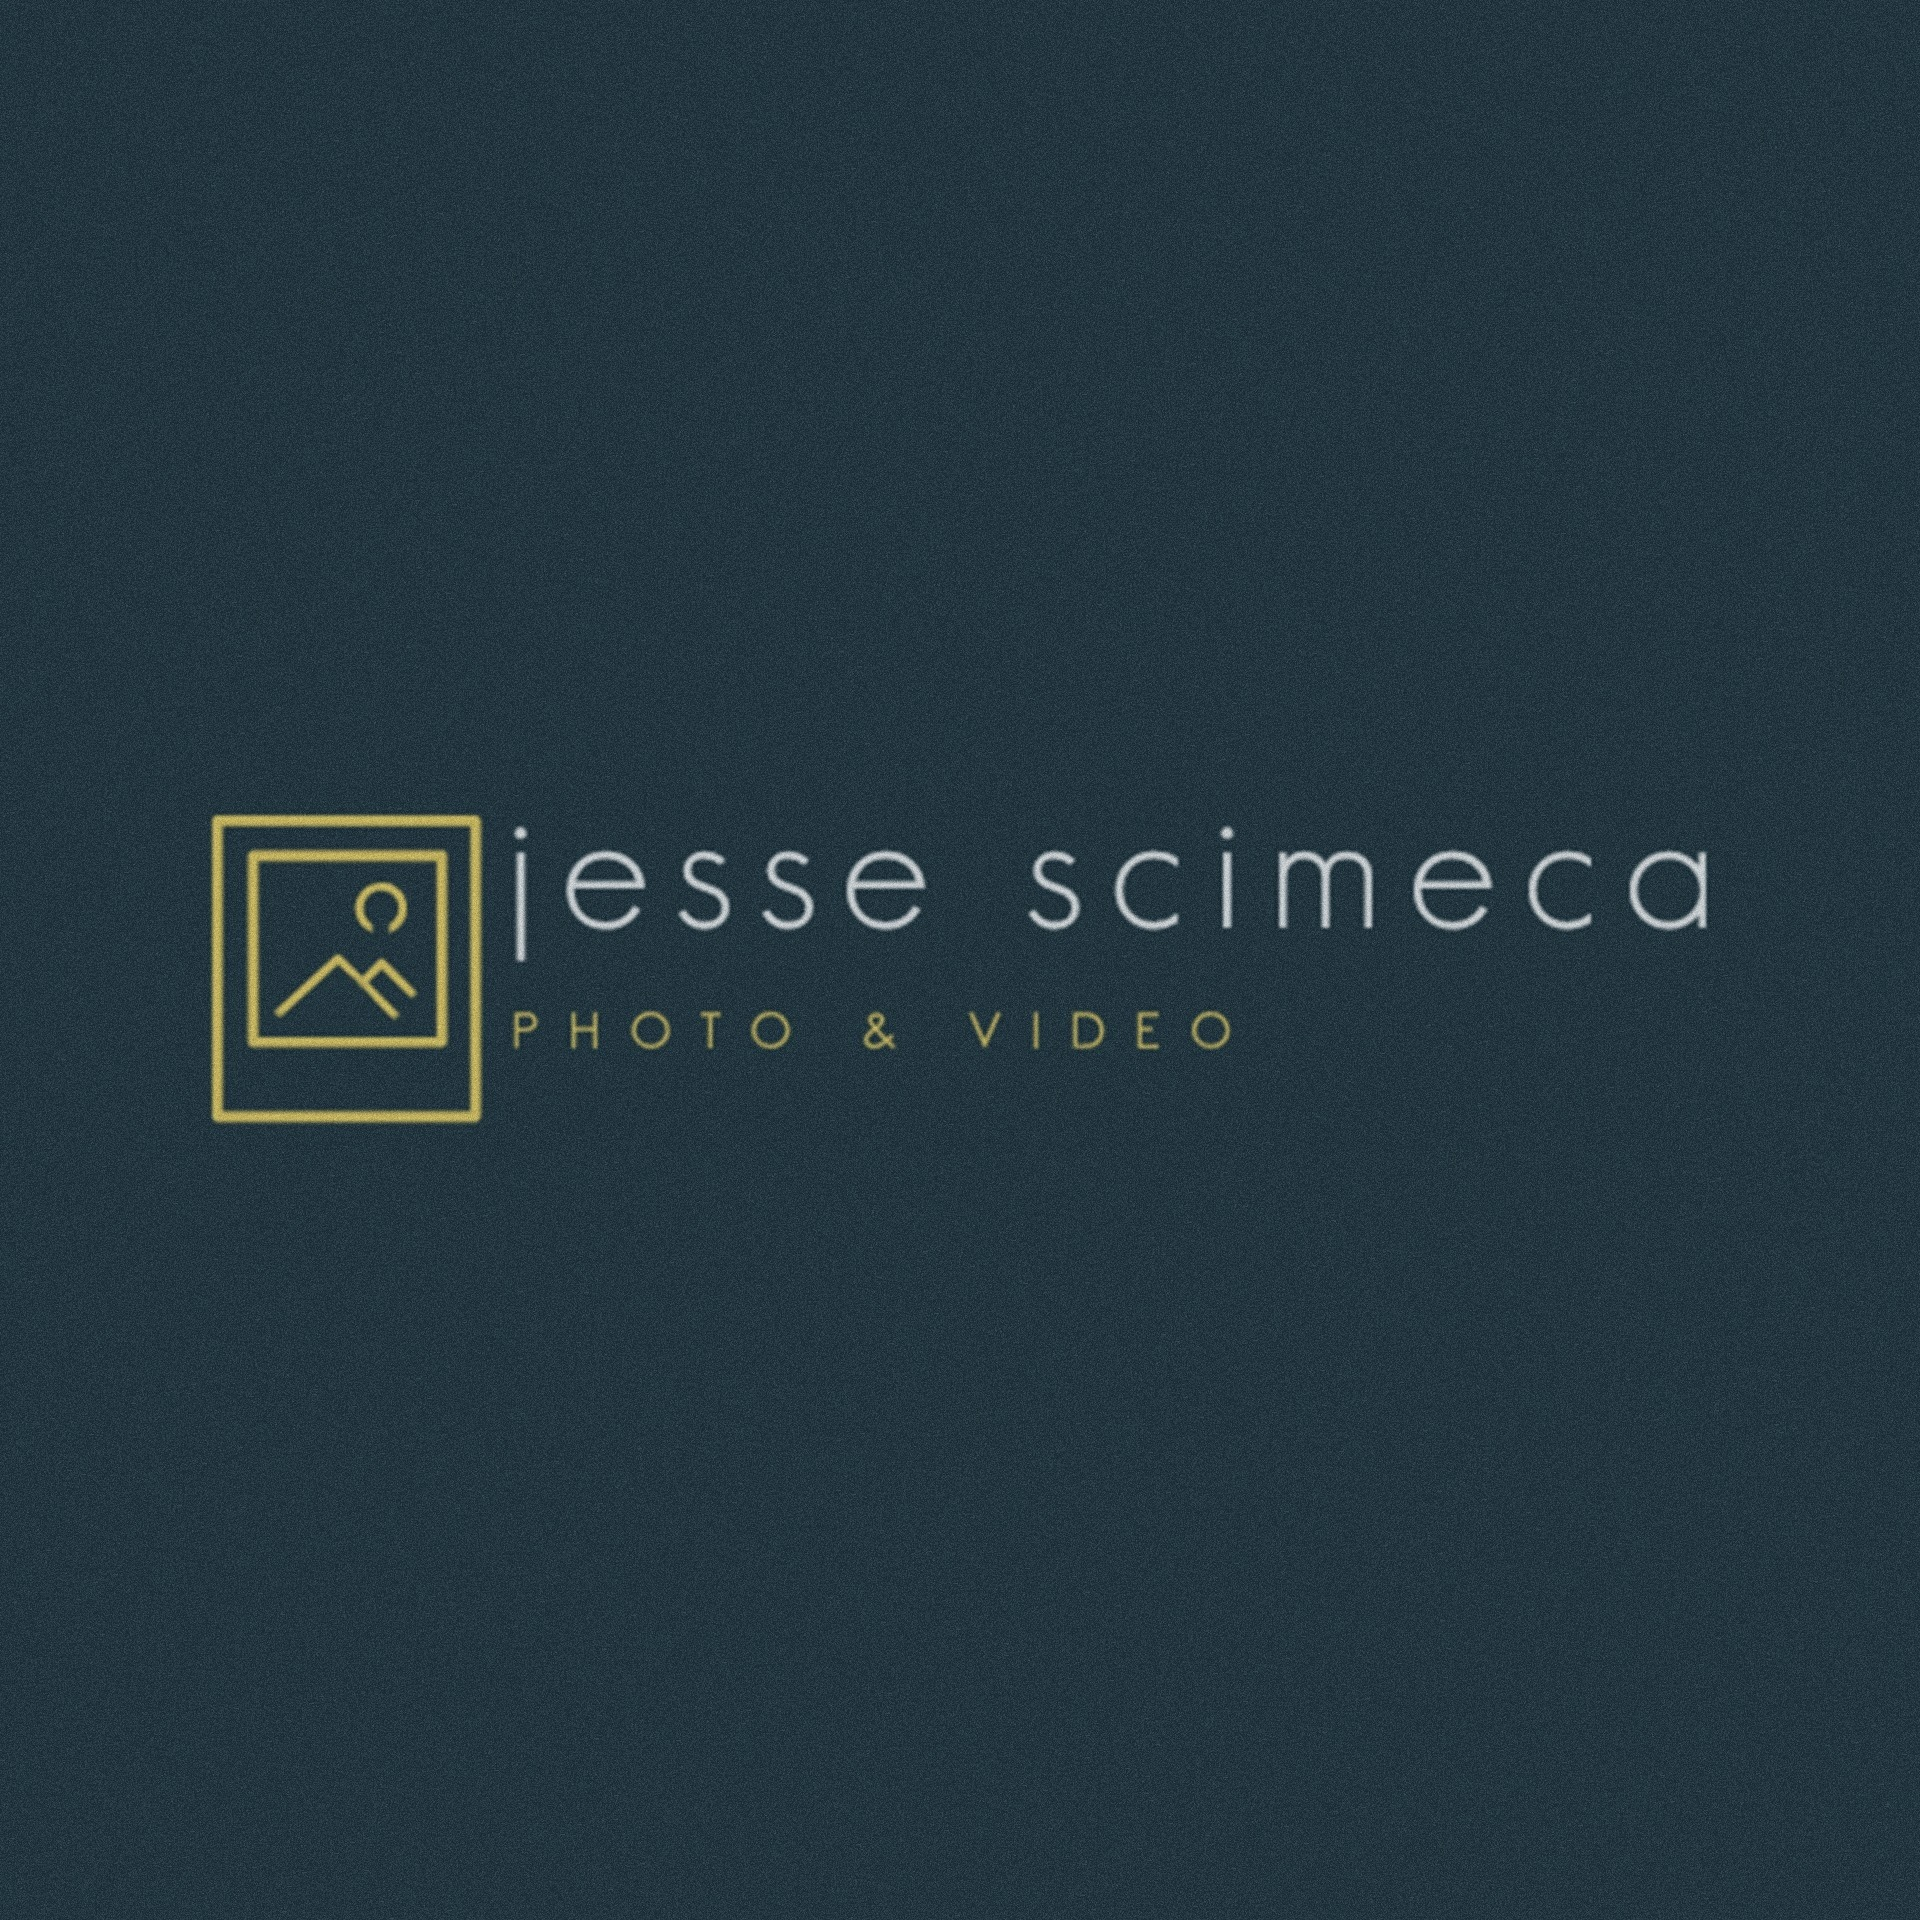 Jesse Scimeca Photography